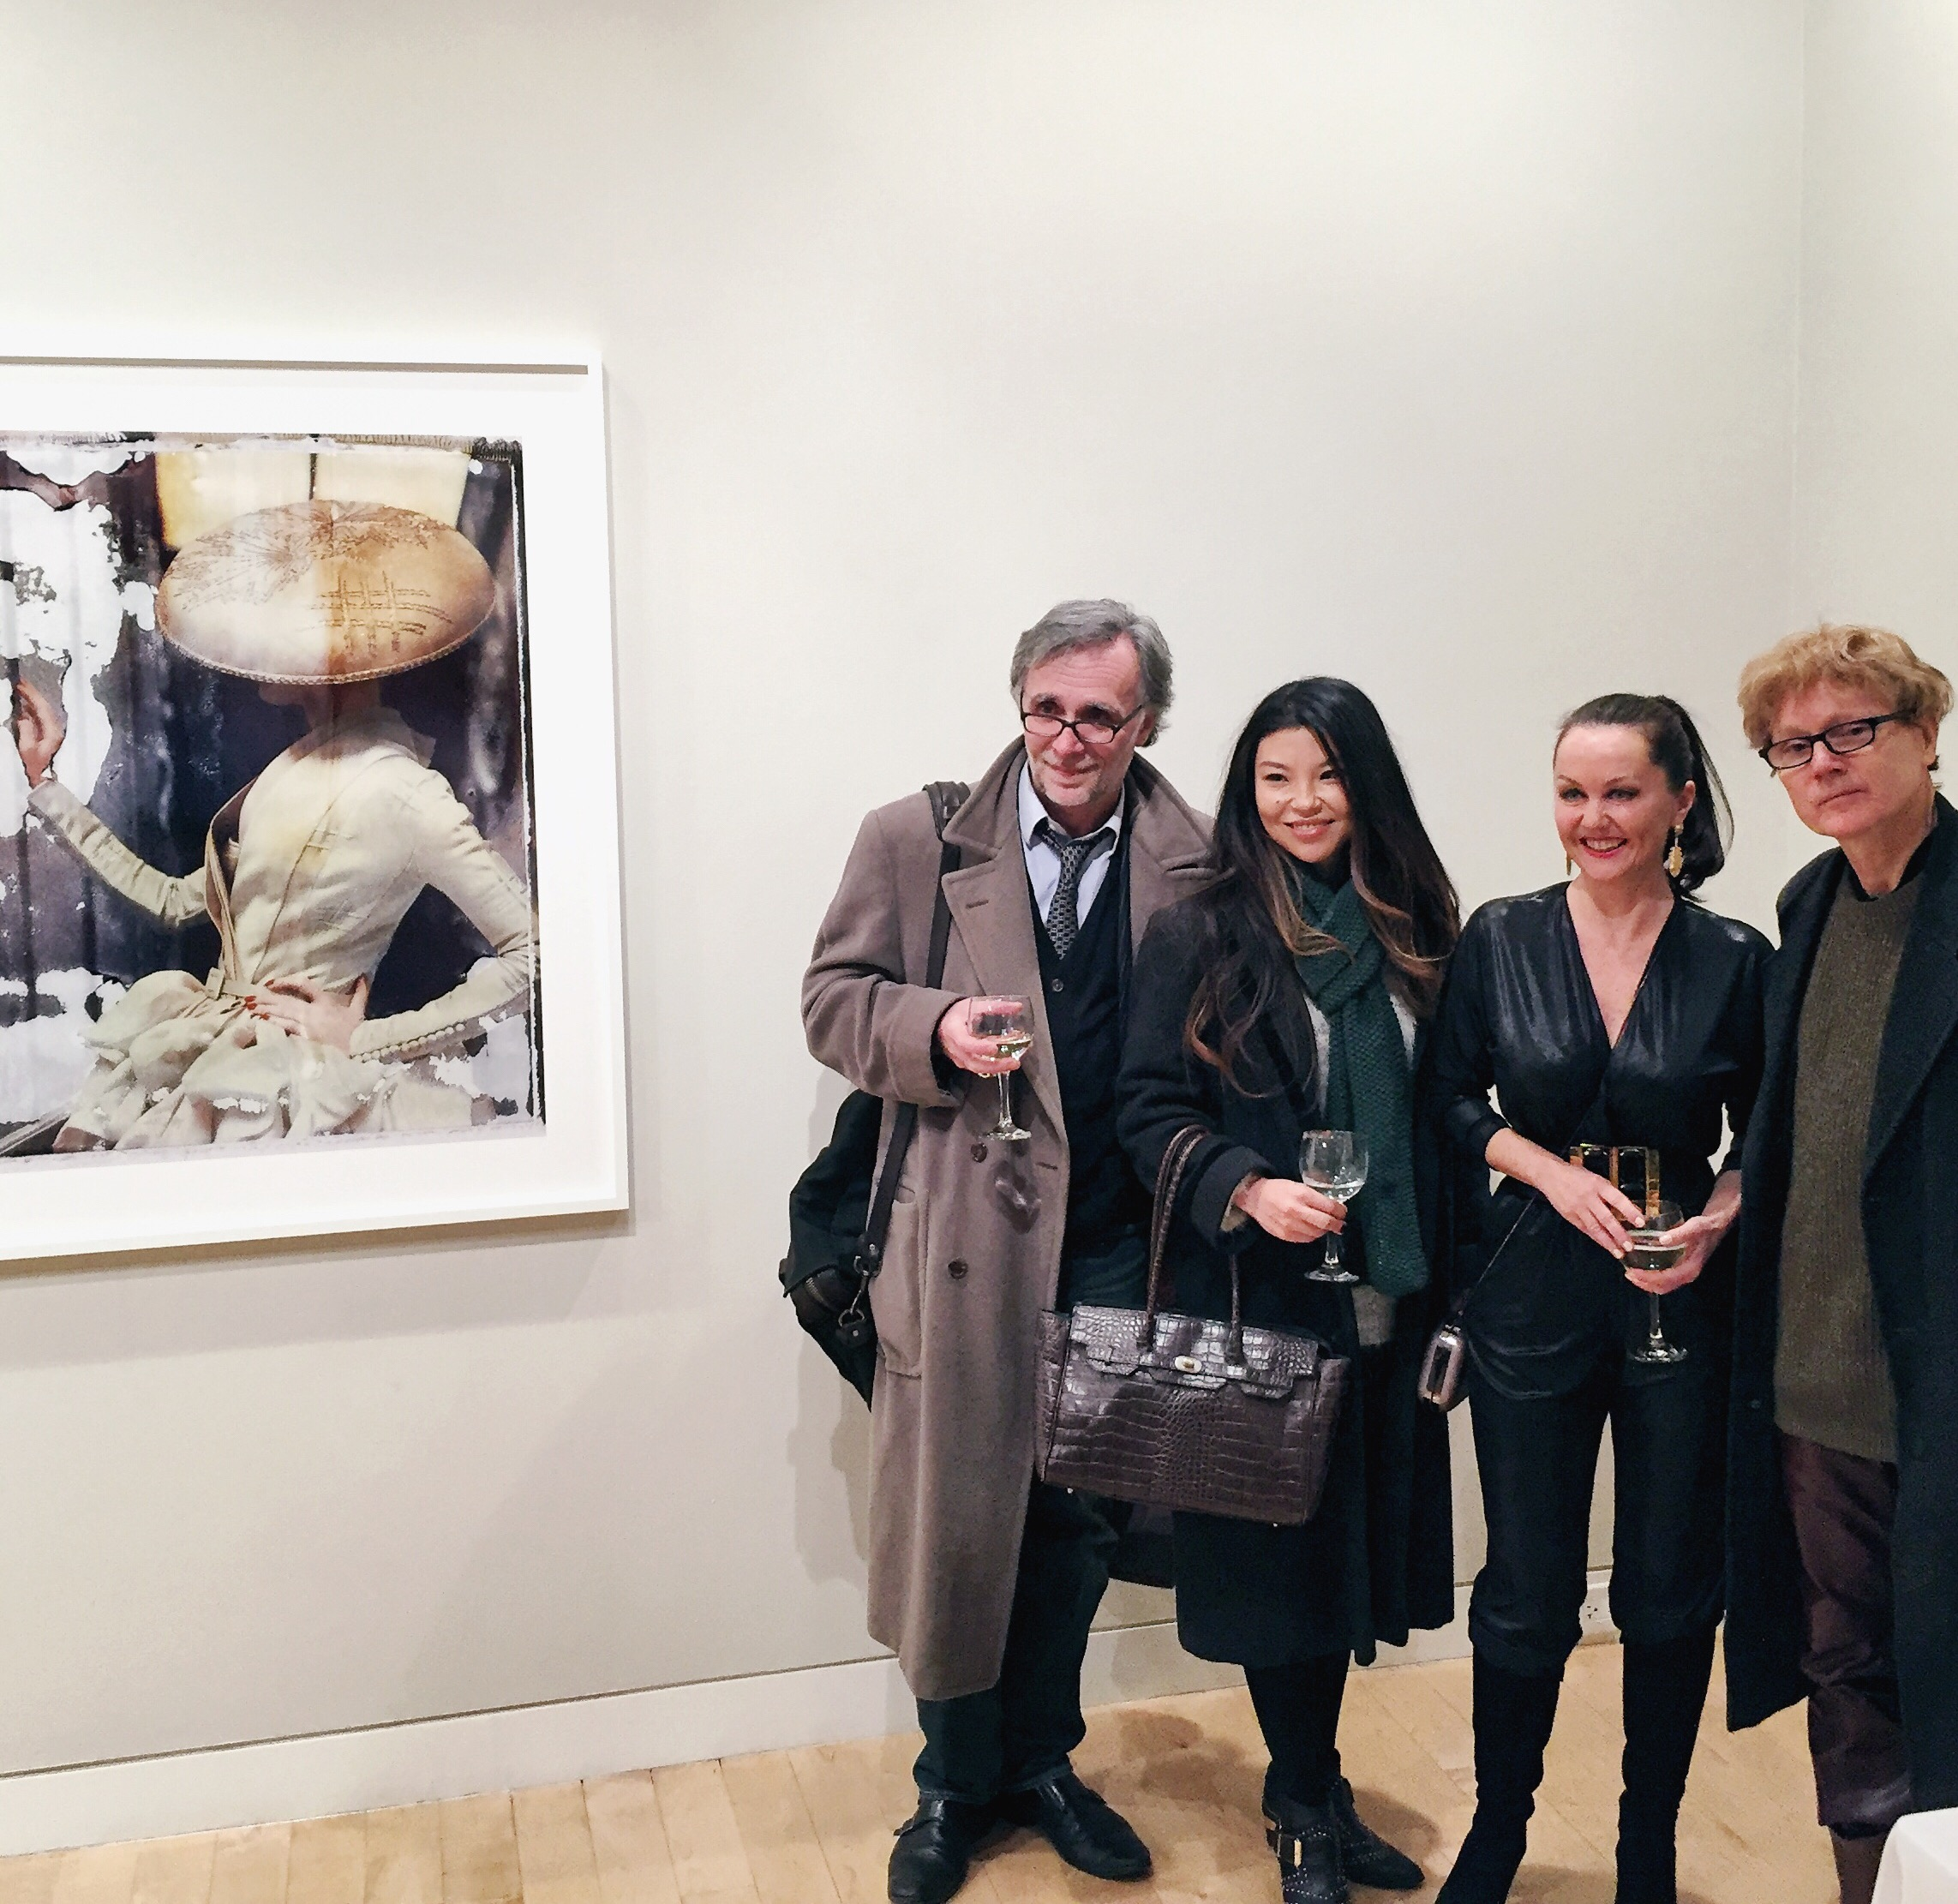 L to R: Gilles Decamps, Suzanne Spiegoski, Cathleen Naundorf, & M. Brendon MacInnis from  in the Art world .